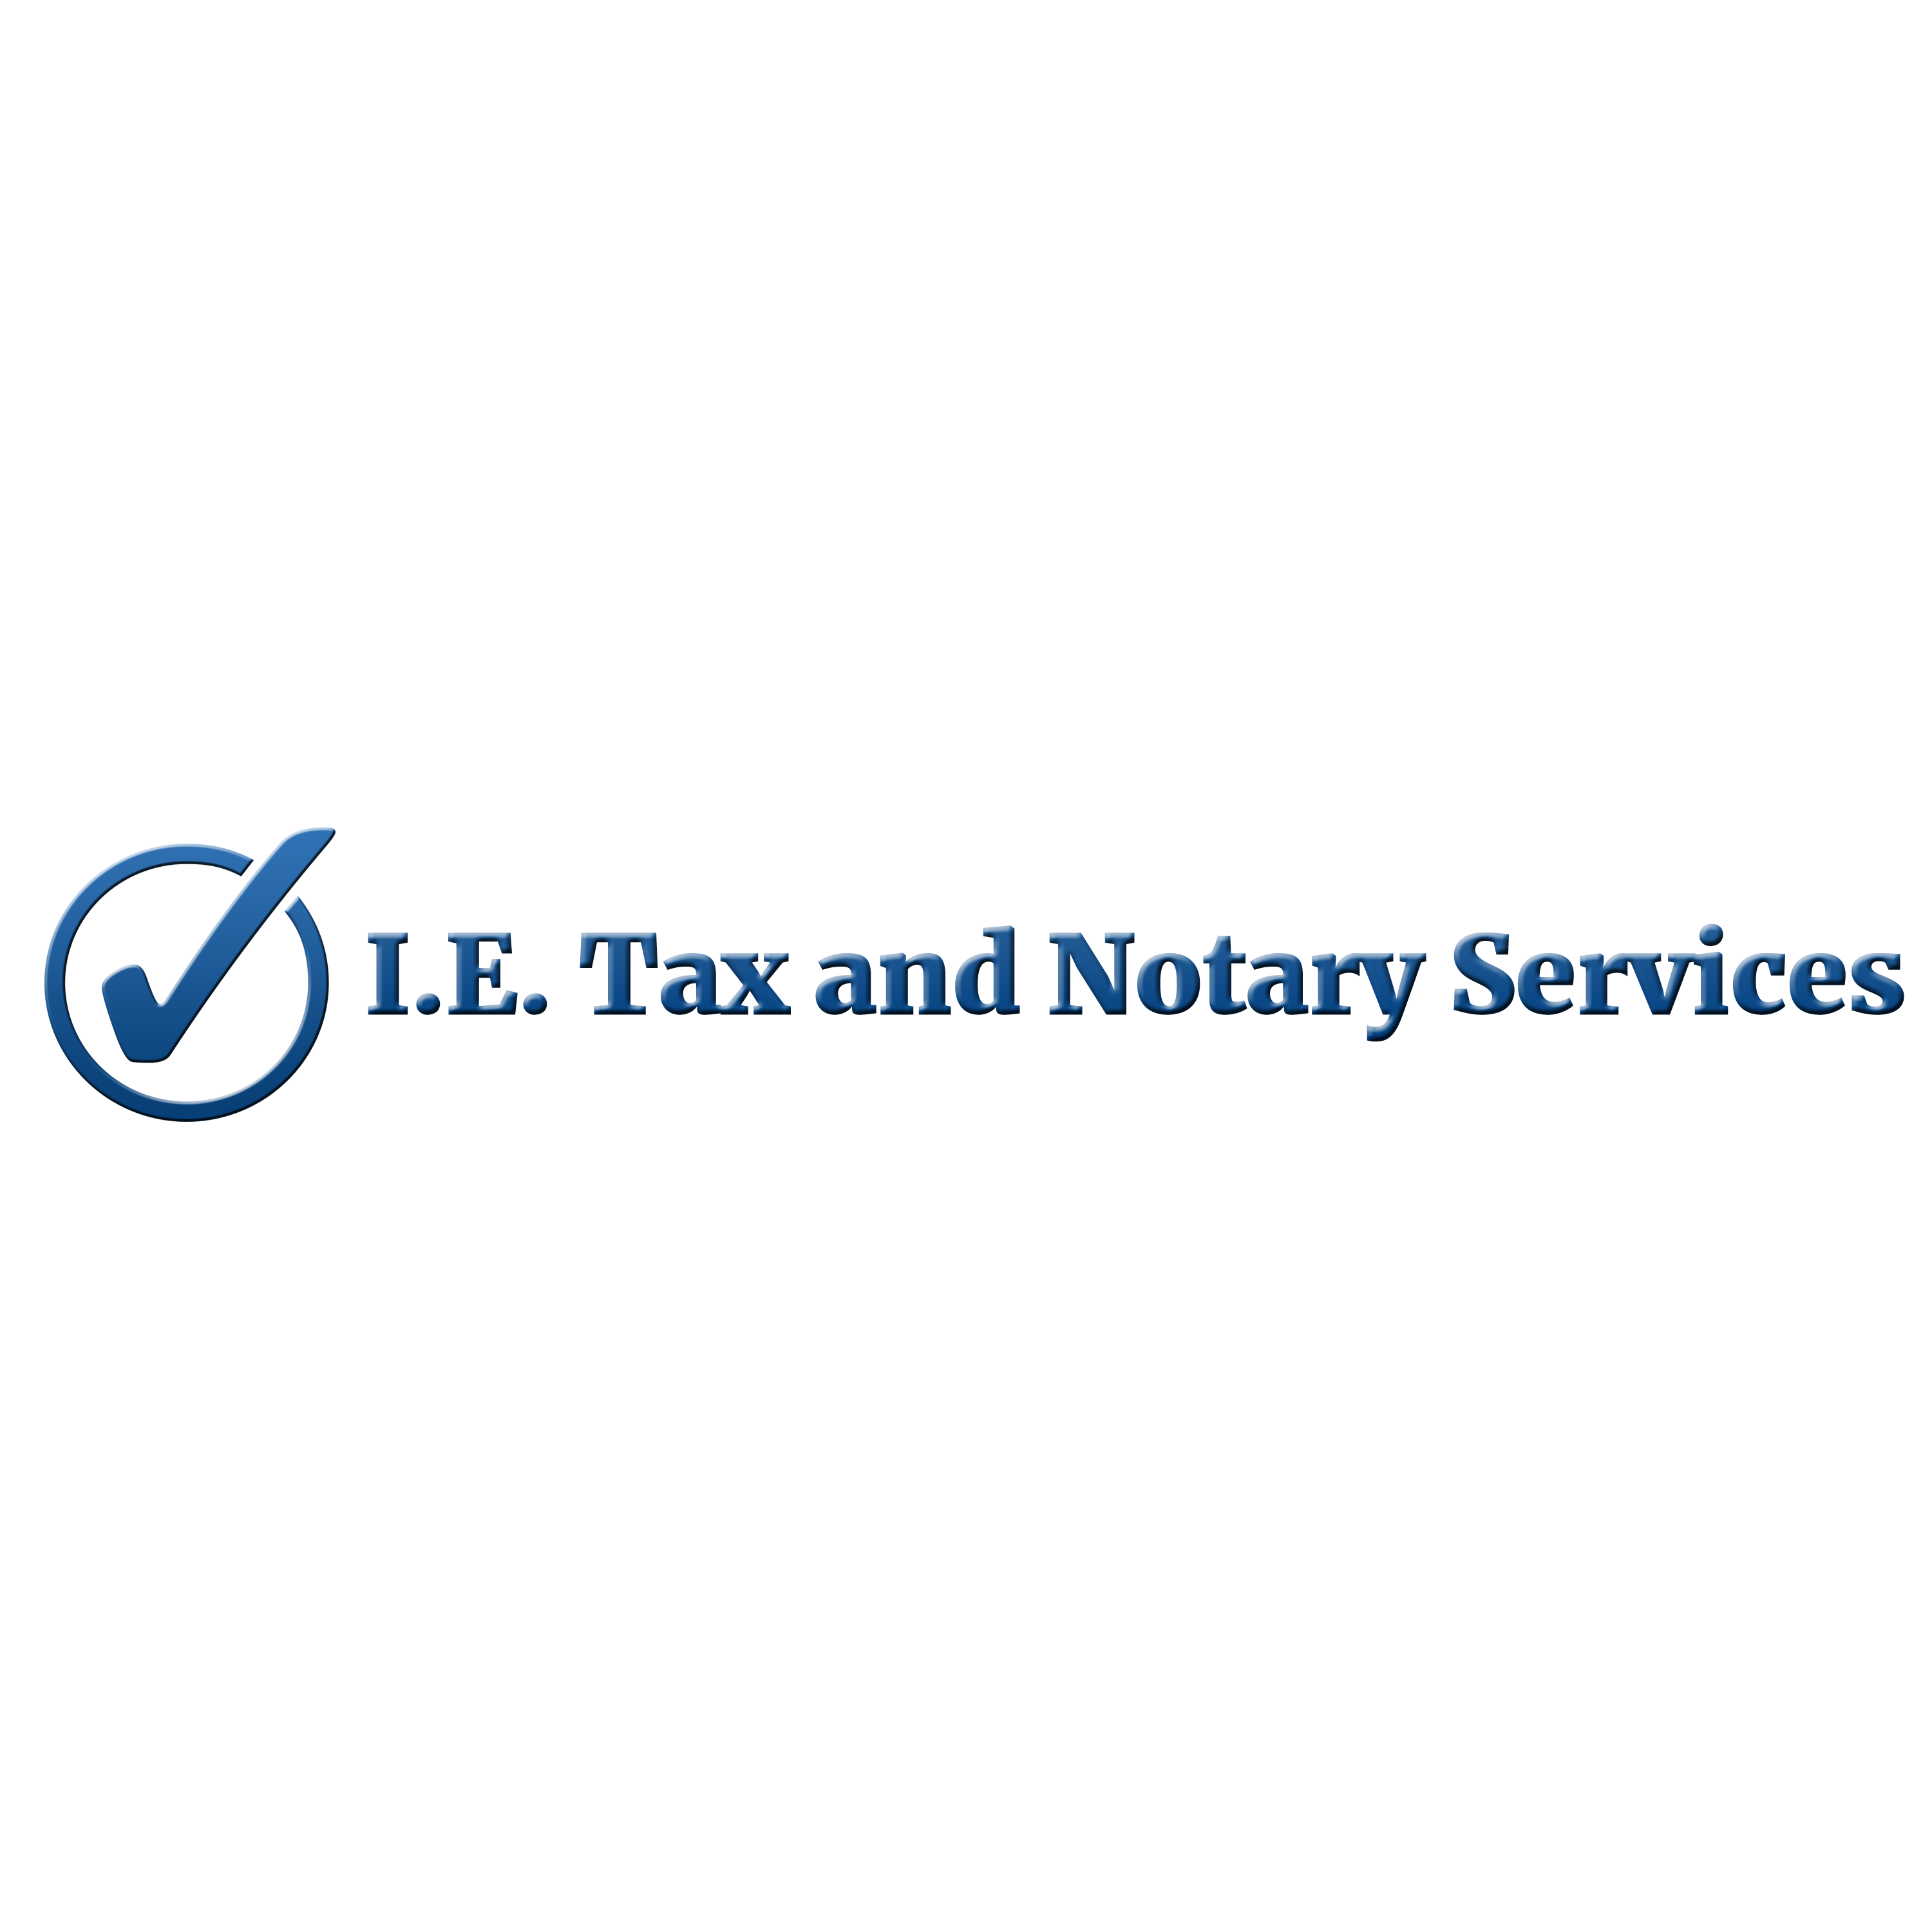 I.E. Tax And Notary Services